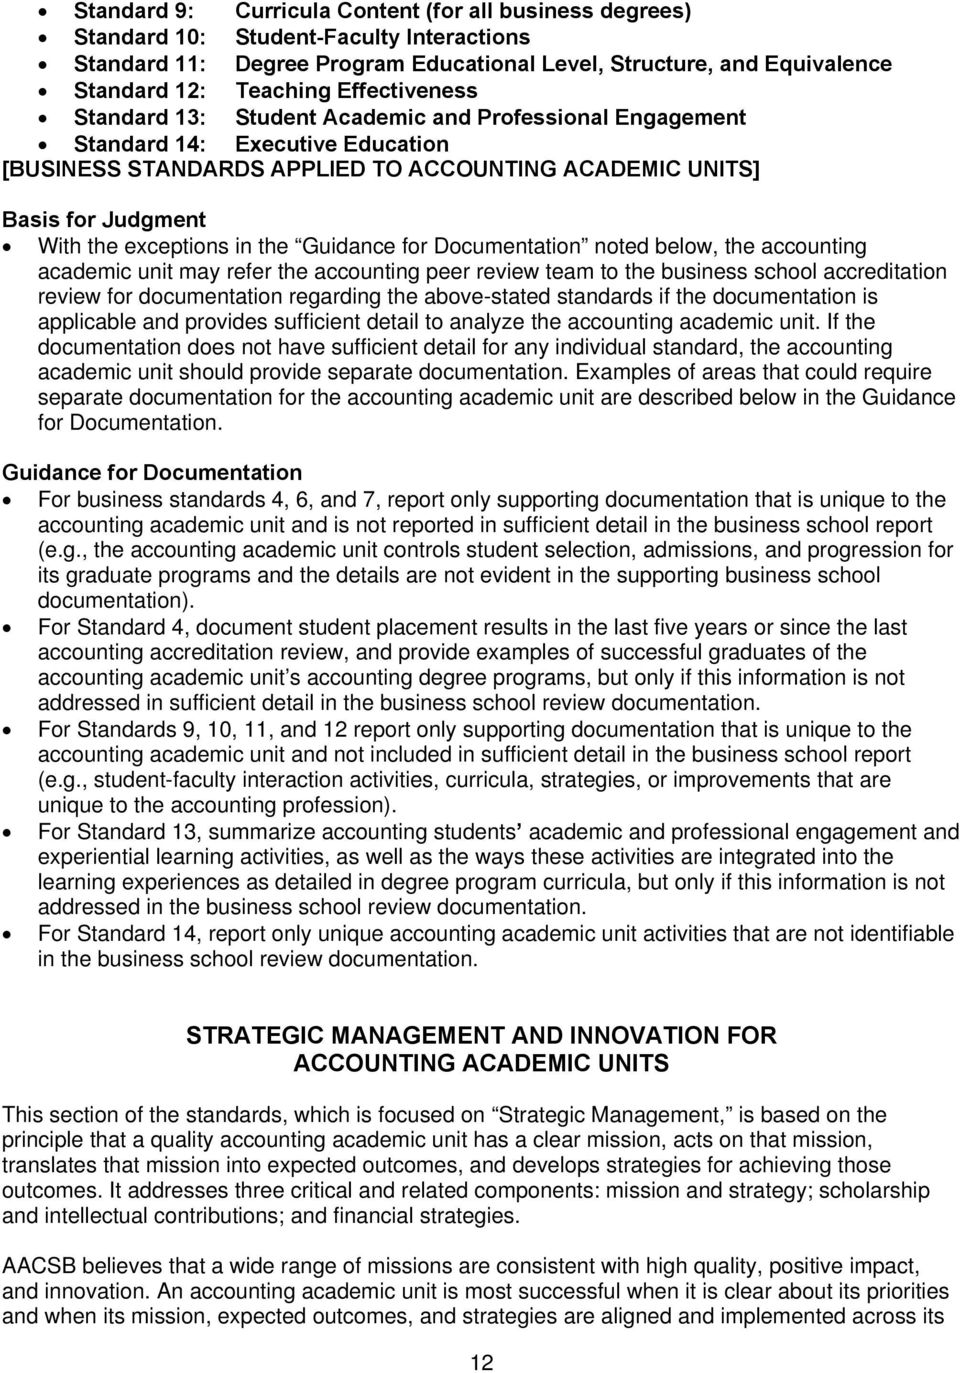 exceptions in the Guidance for Documentation noted below, the accounting academic unit may refer the accounting peer review team to the business school accreditation review for documentation